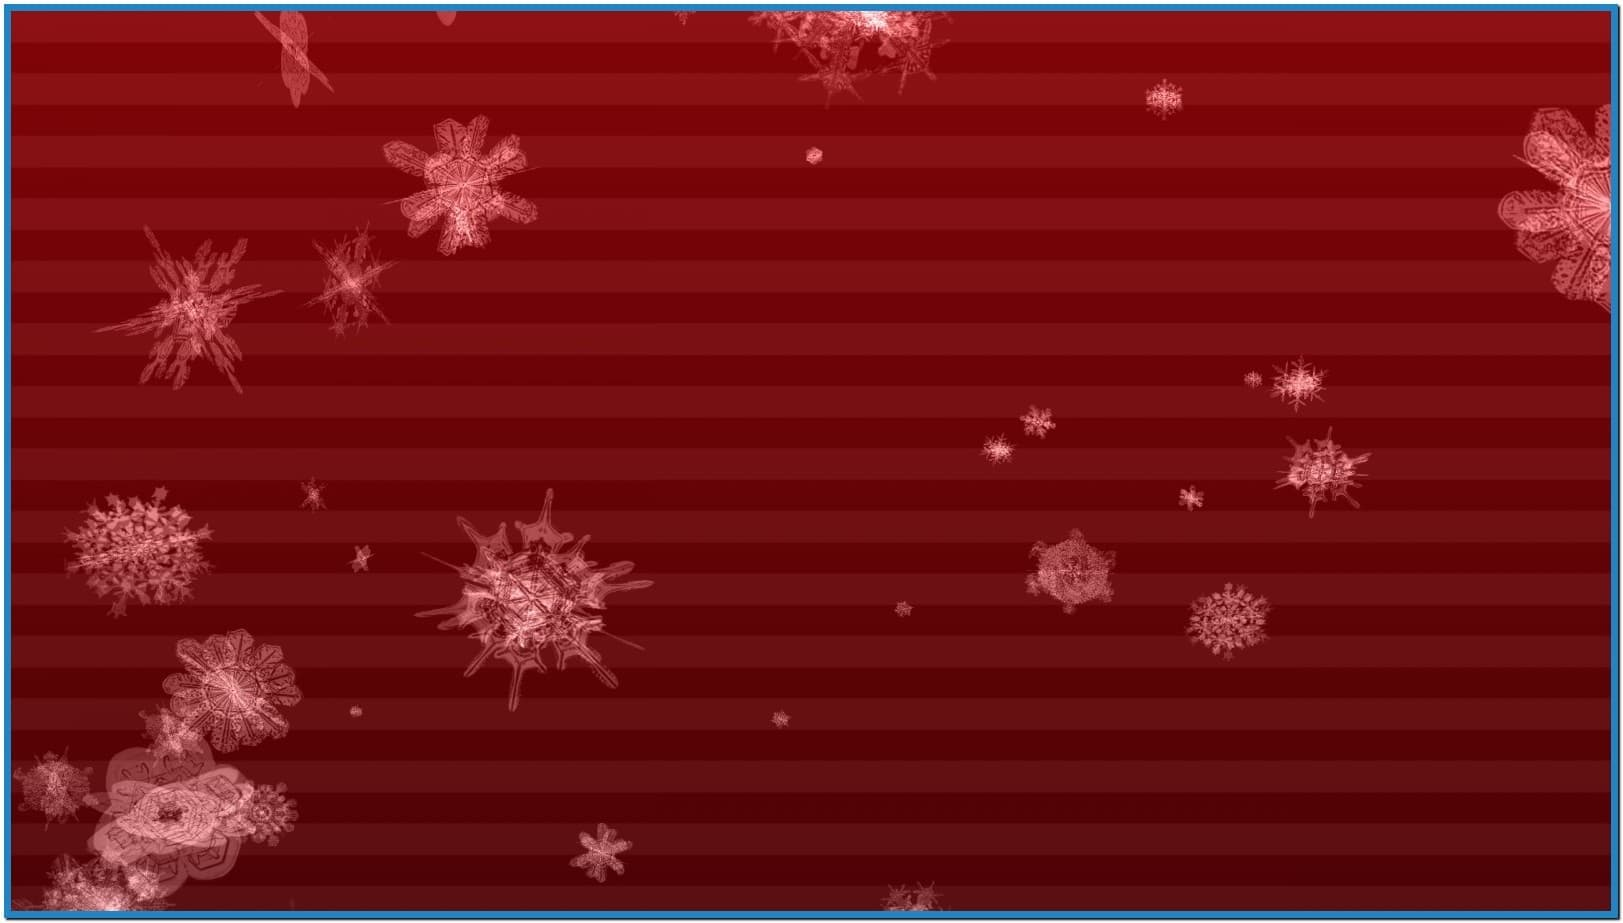 Screensaver Holiday Download Picture 1623x923